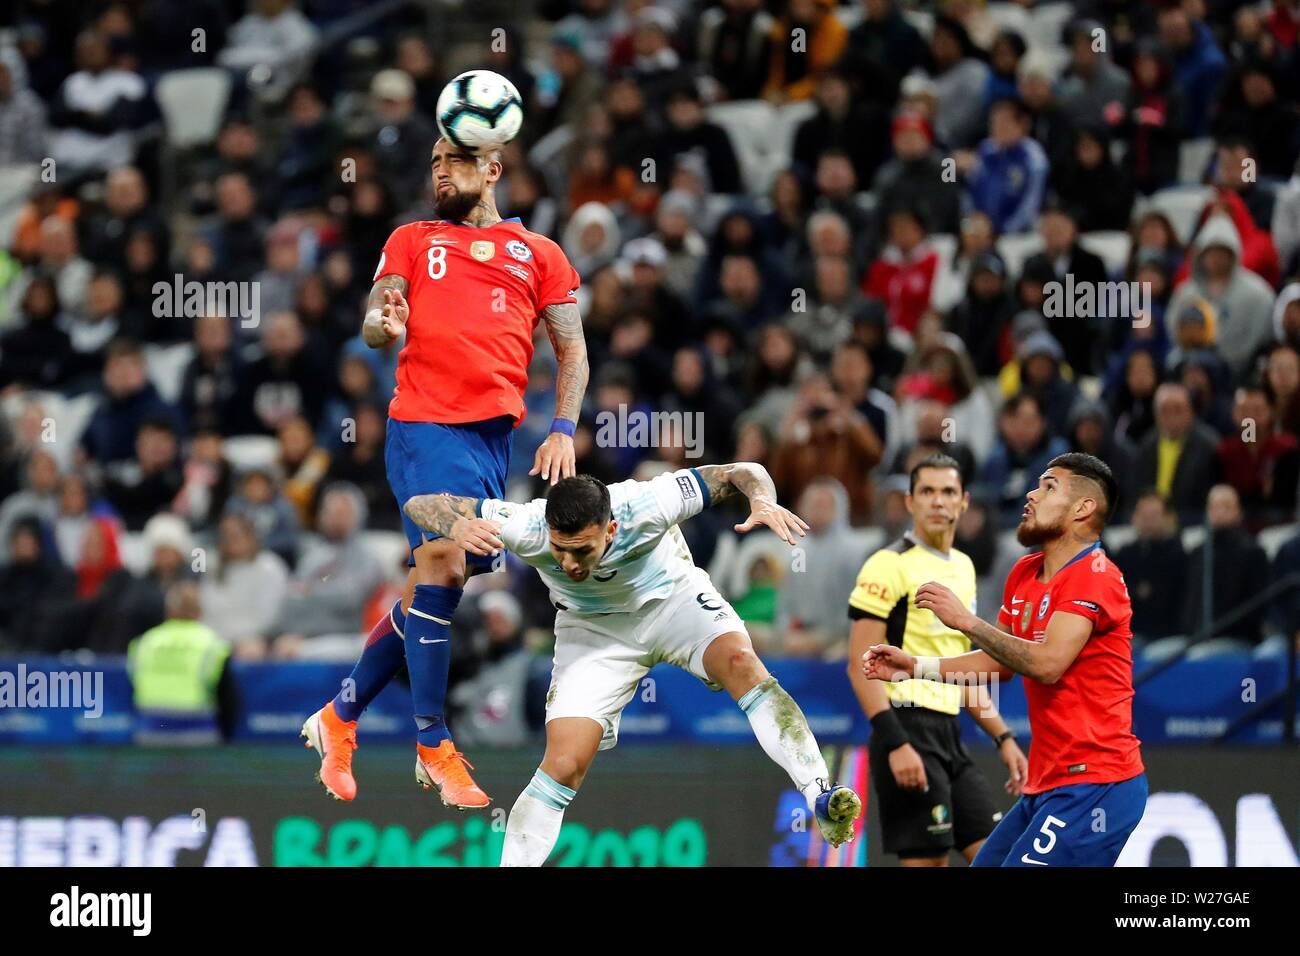 Sao Paulo, Brazil. 06th July, 2019. Chilean Arturo Vidal (L) vies for the ball with Argentinian Leandro Paredes, during the Copa America 2019 3rd place soccer match between Argentina and Chile, at Arena Corinthians Stadium in Sao Paulo, Brazil, 6 July 2019. Credit: Sebastiao Moreira/EFE/Alamy Live News - Stock Image